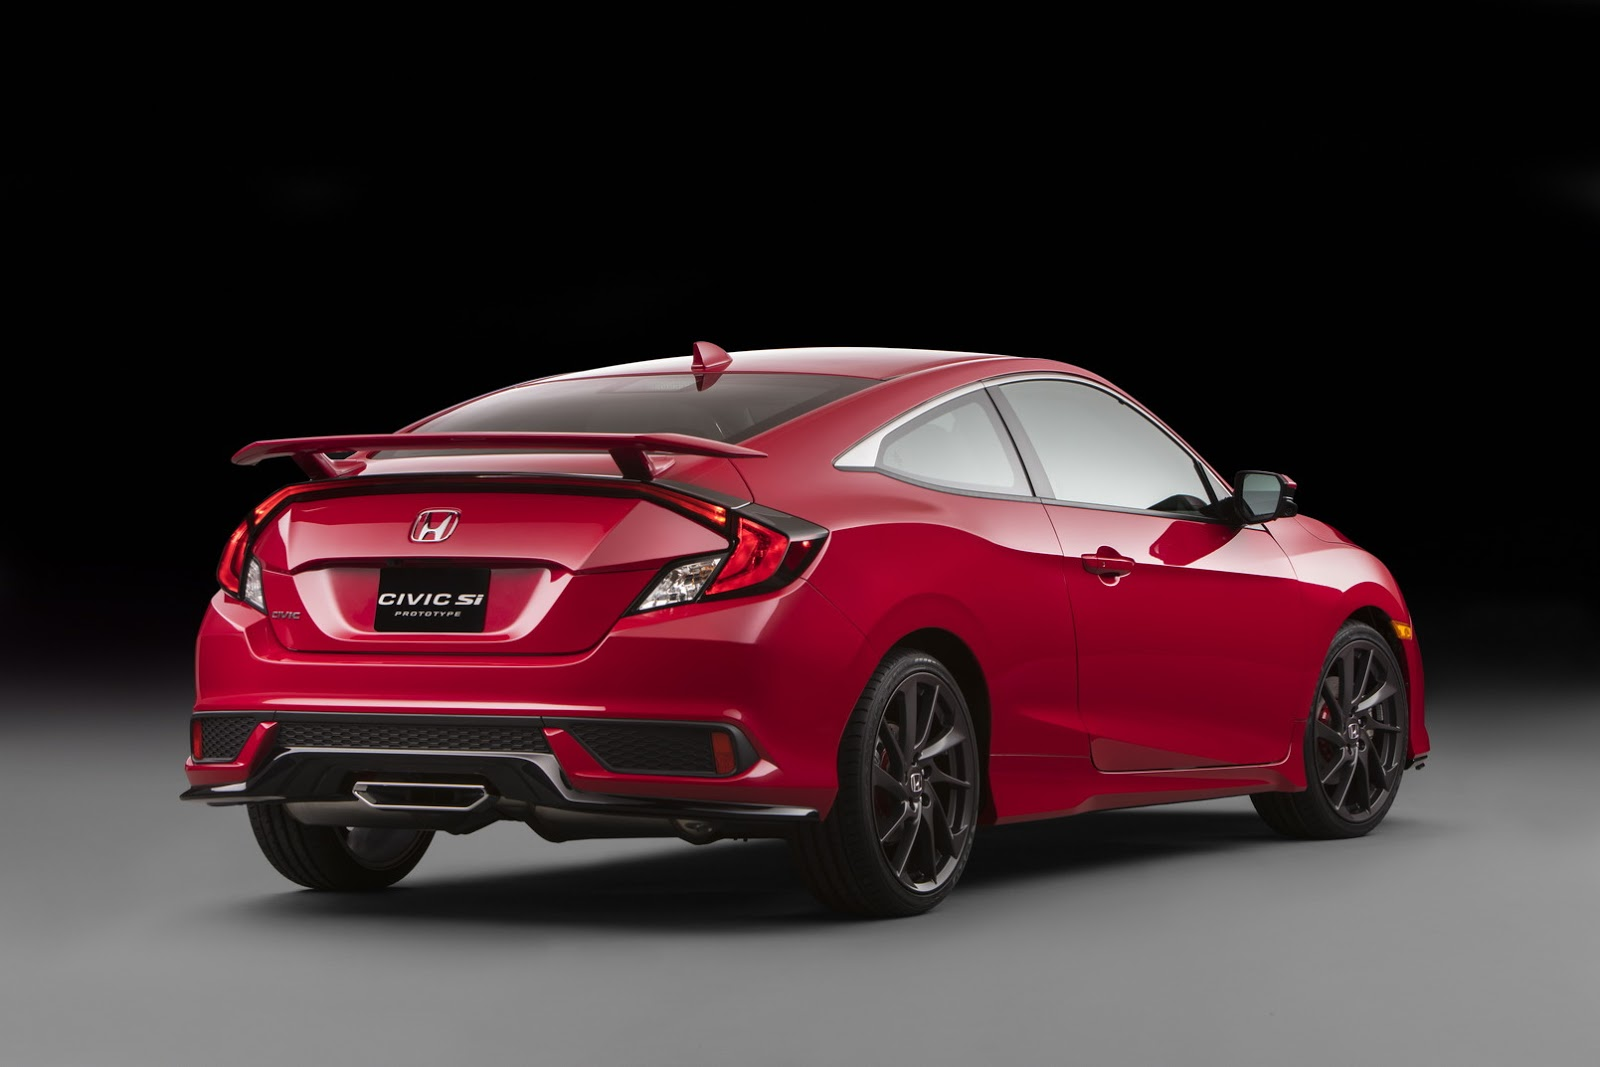 Honda Civic Si 2017 (3)